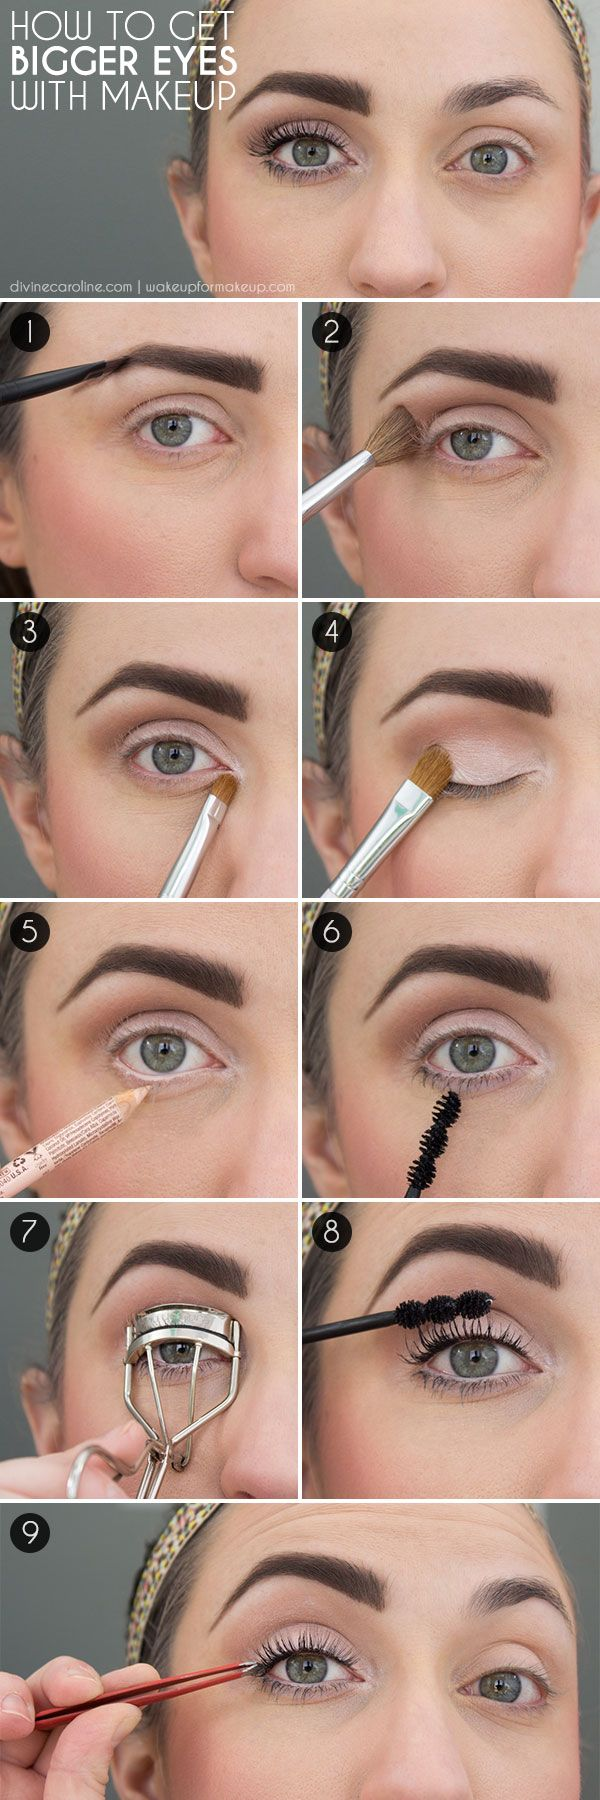 Beauty blogger Ivy's step-by-step guide on how to make your eyes bigger with makeup! #beauty #makeup #eyes